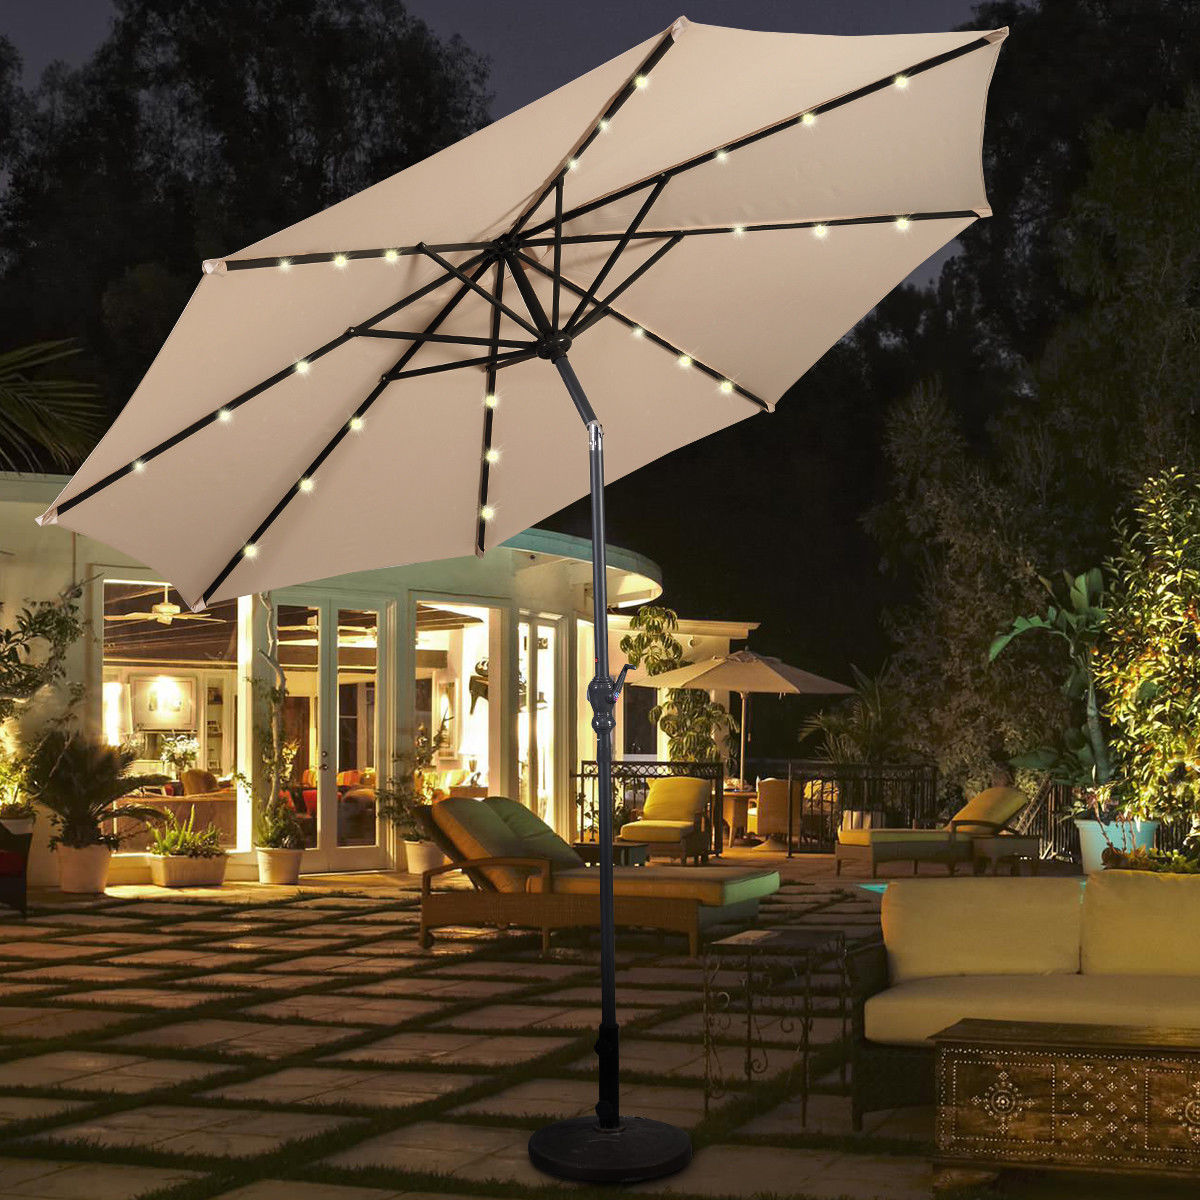 Costway 10ft Patio Solar Umbrella LED Patio Market Steel Tilt W/ Crank Outdoor Beige